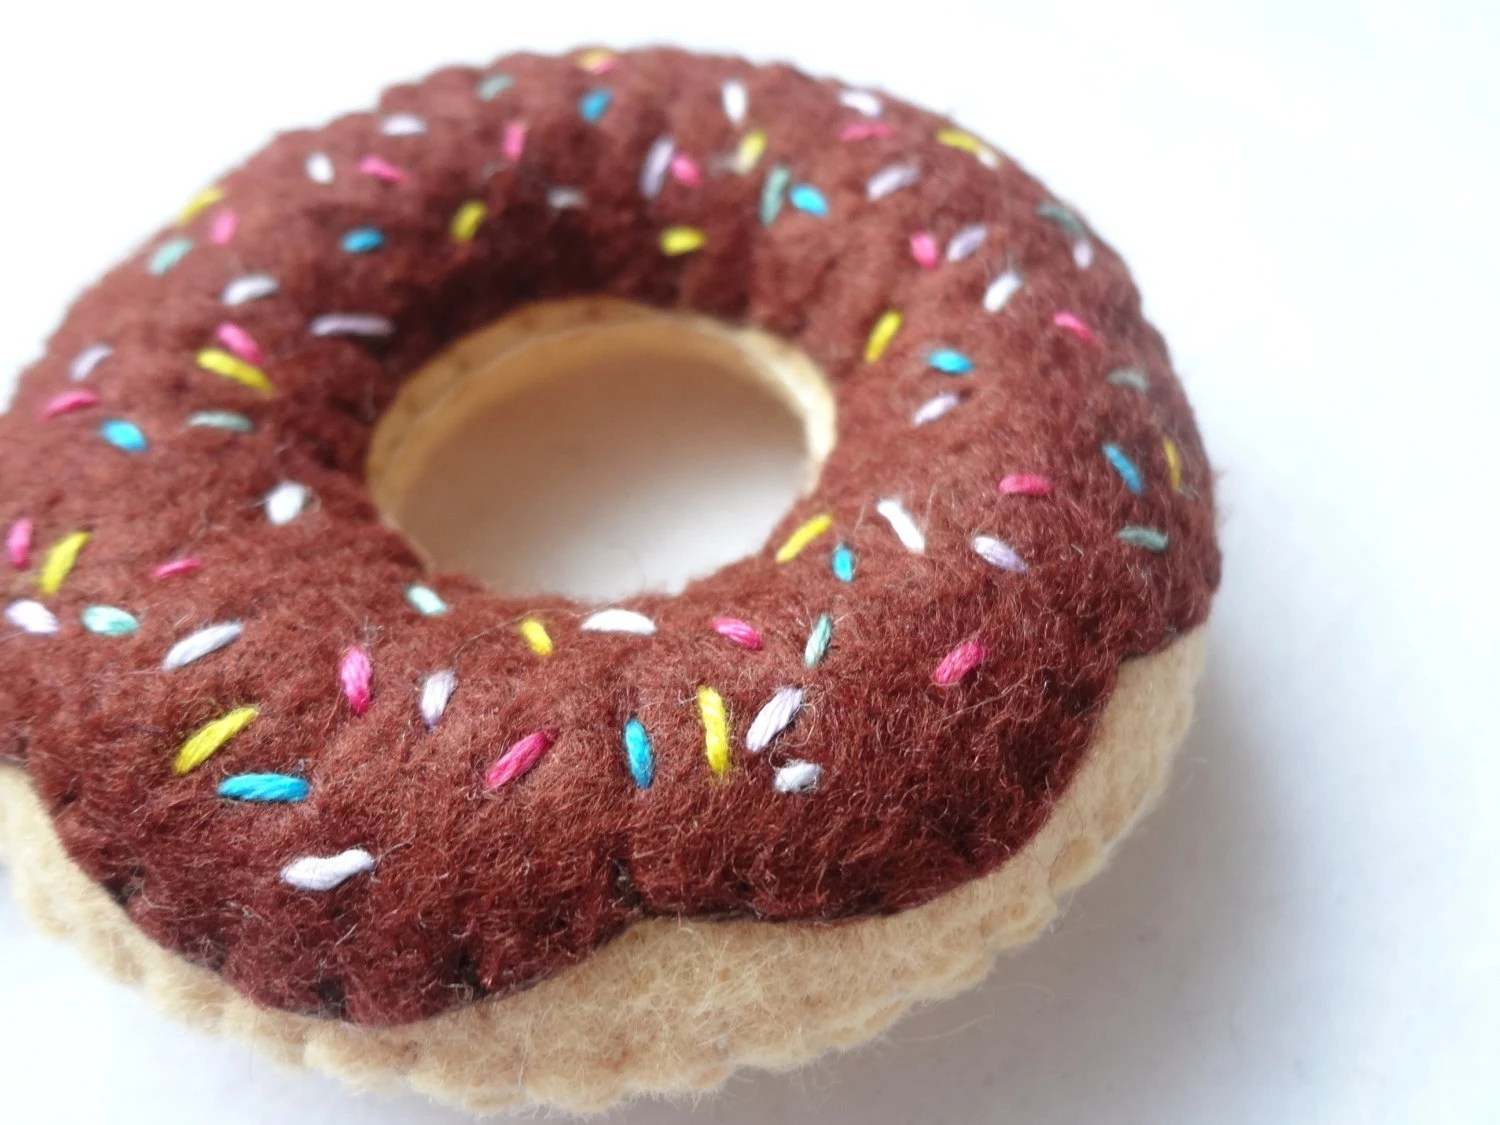 Cute Felt Chocolate Donut with Sprinkles Key Chain or doughnut  keyring - shopofworldlydelight